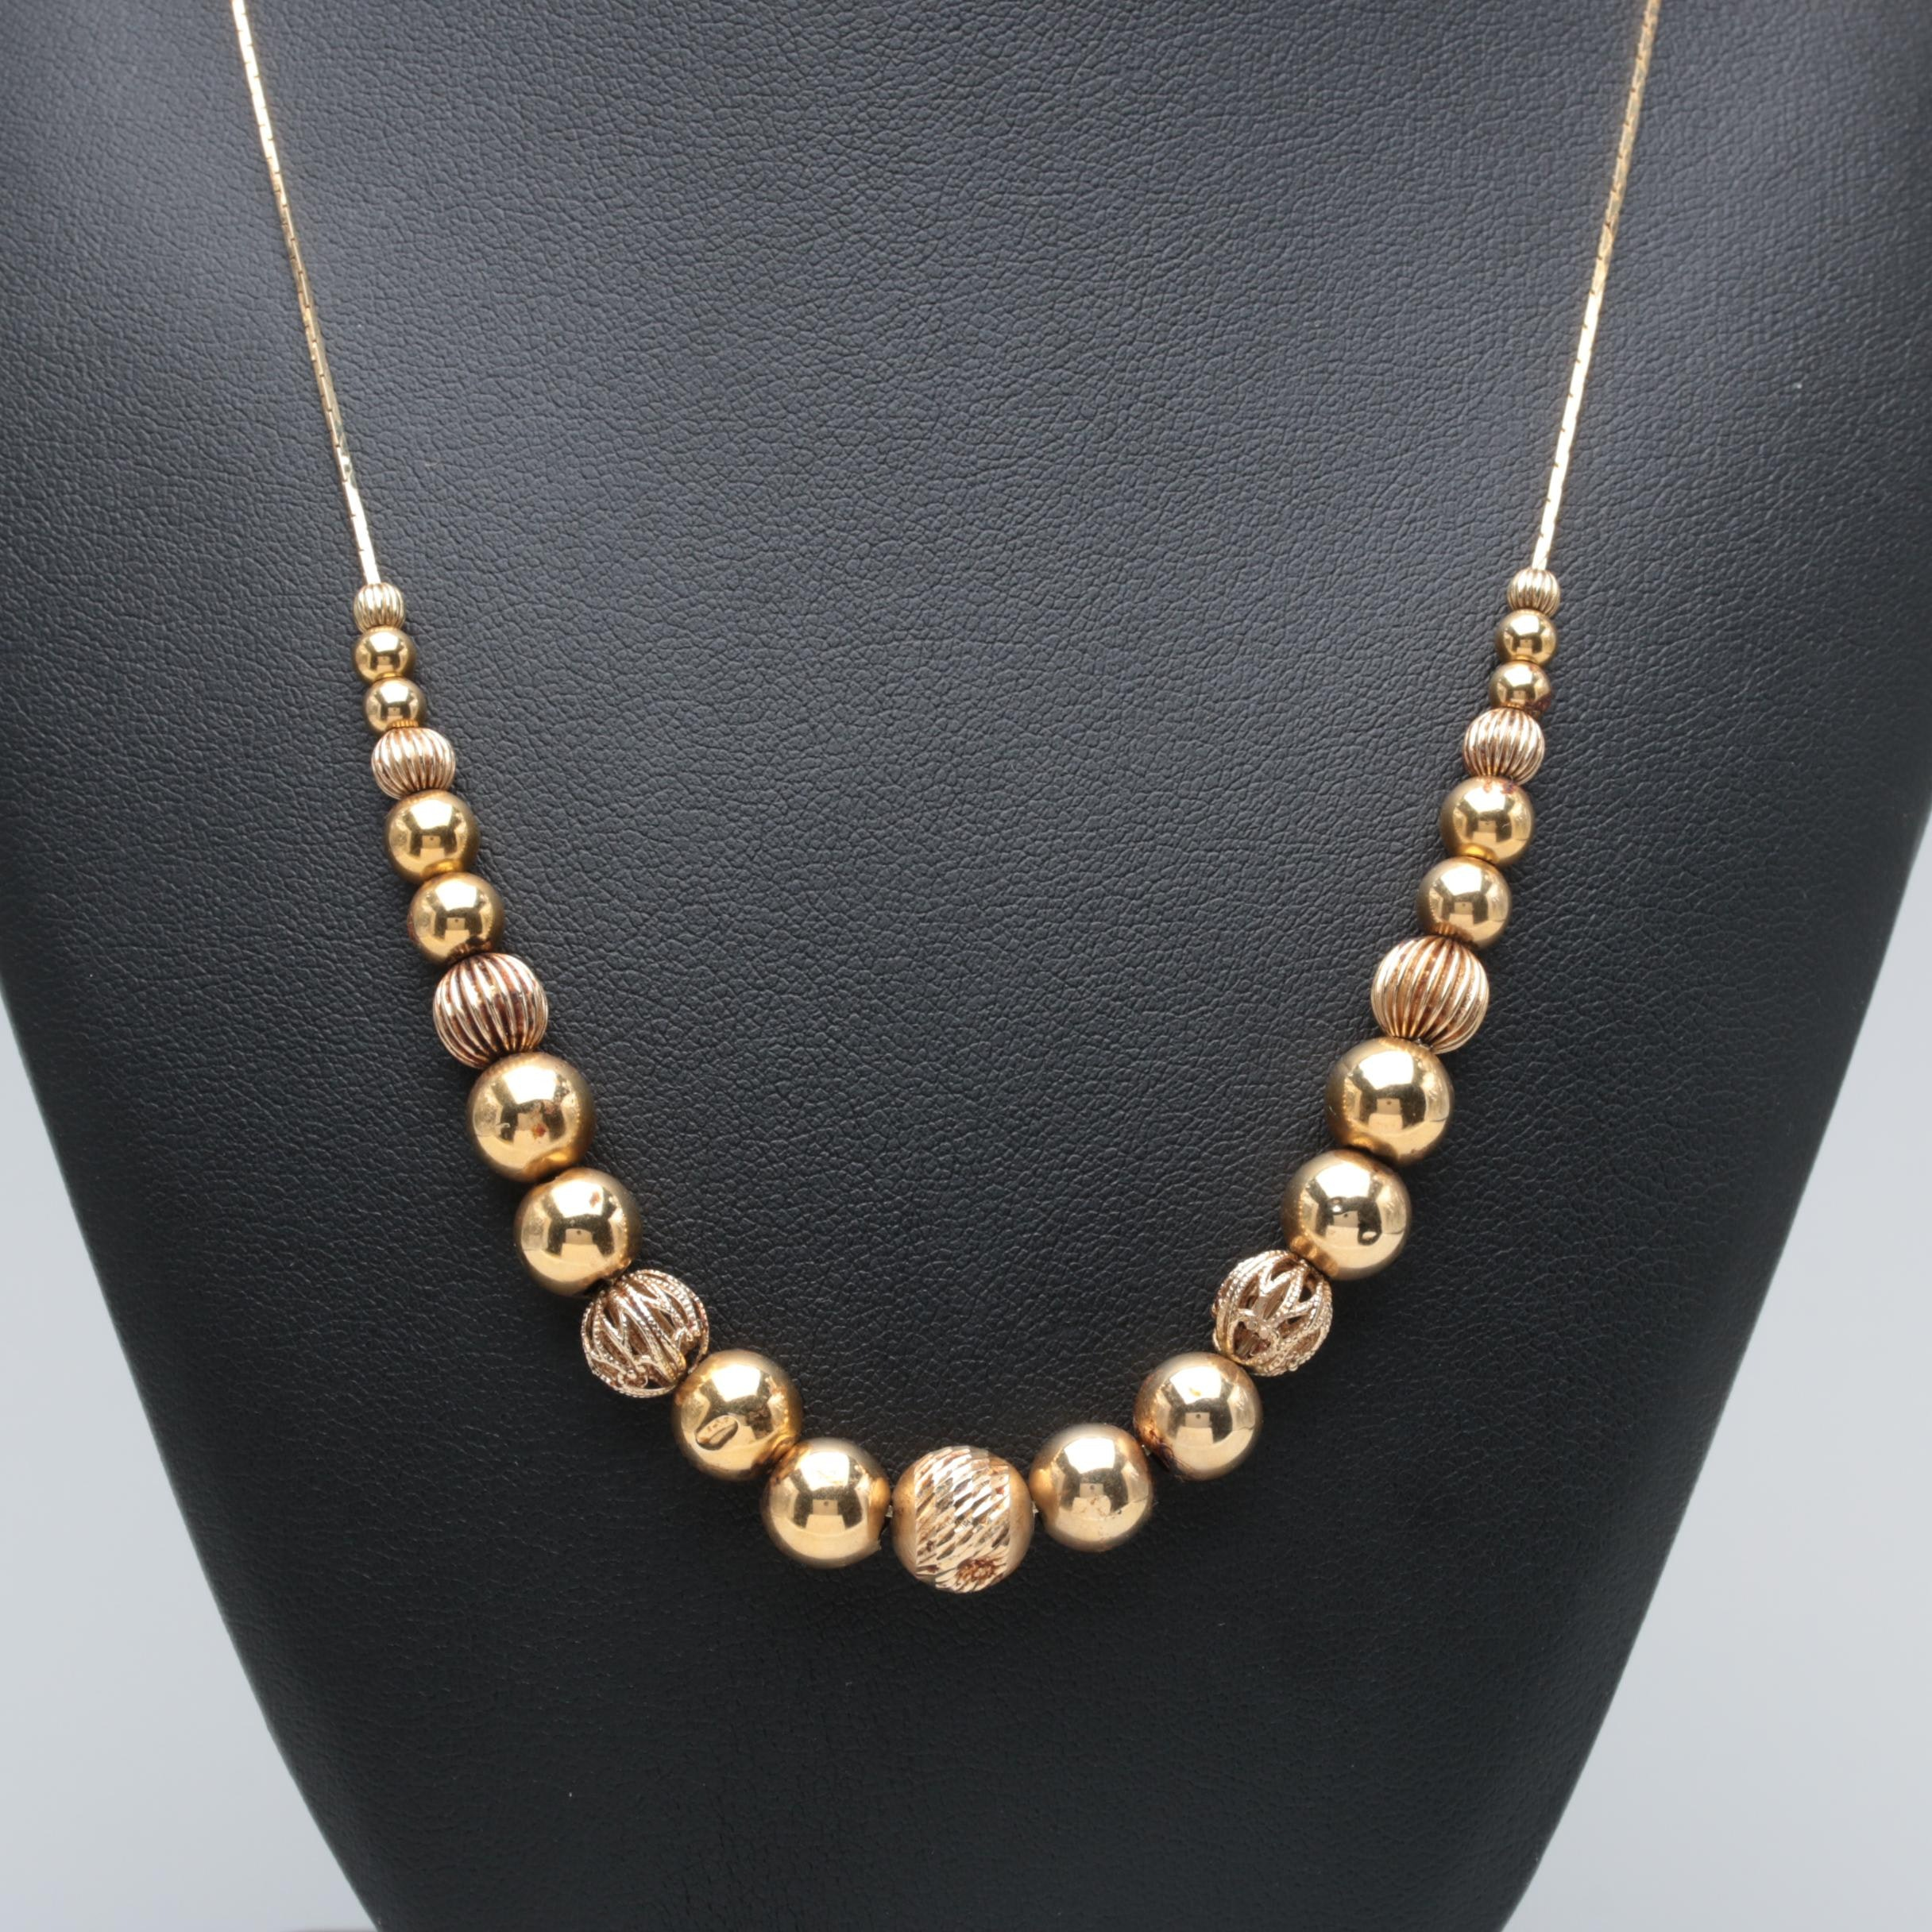 14K Yellow Gold Graduating Textured, Pierced, and High Polish Bead Necklace